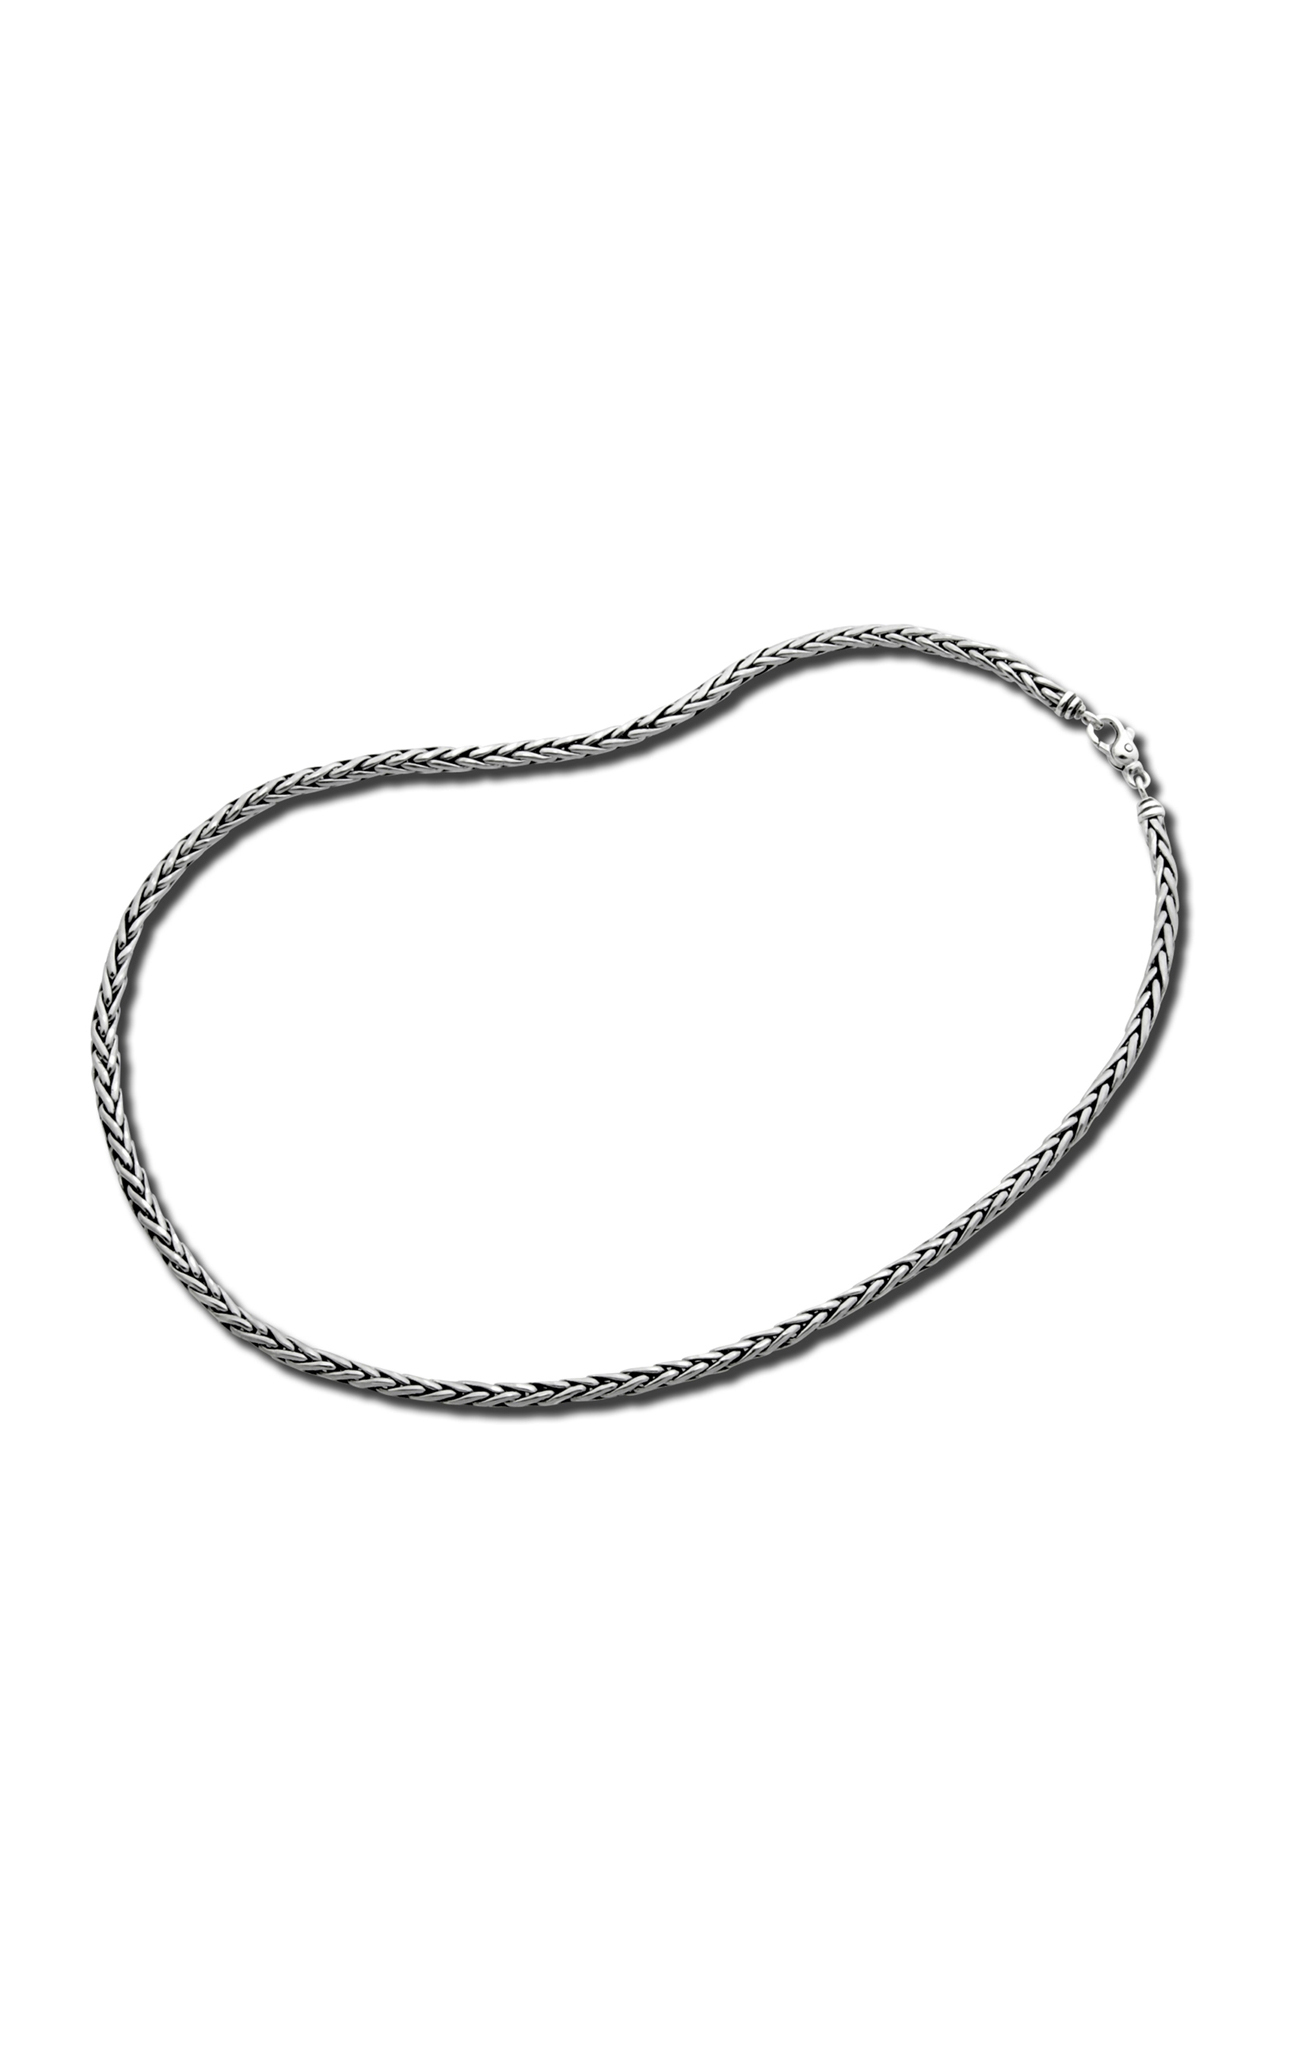 Zina Classic Necklace A669S-16 product image